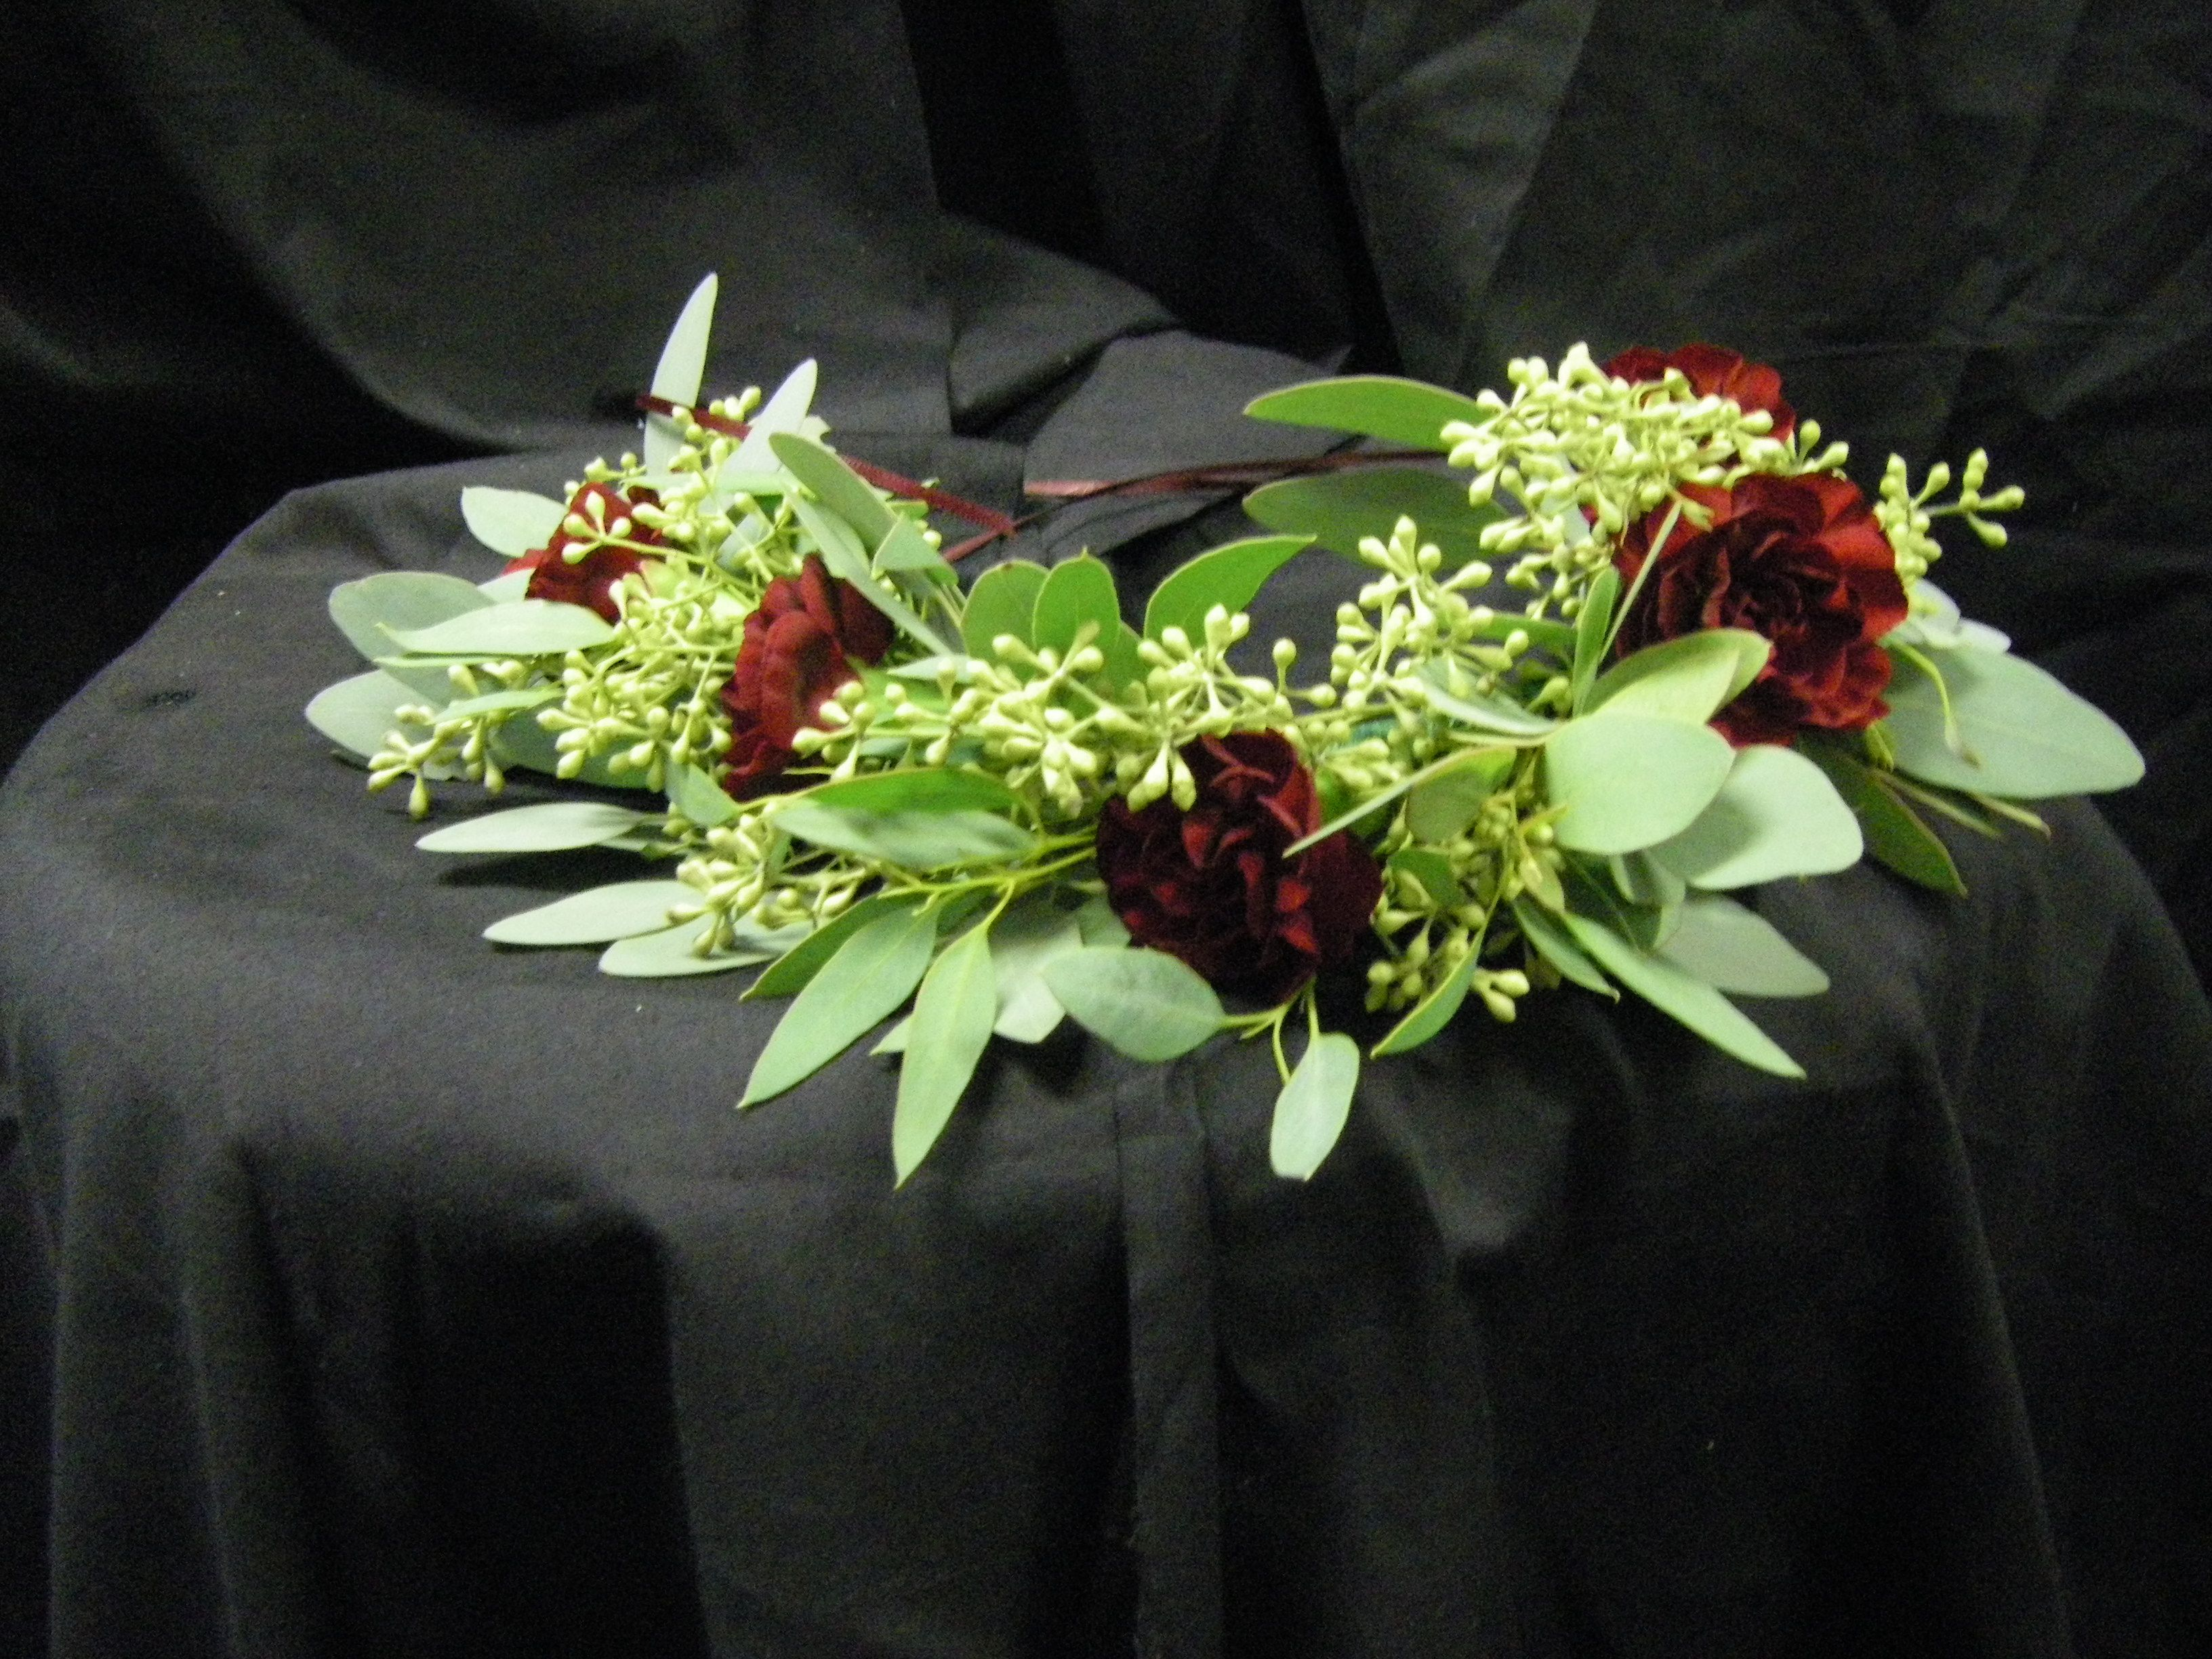 Flower crown with burgundy carnations and seeded eucalyptus our order flowers online with same day delivery from stillings embry florists fresh flowers and hand delivered right to your door in lewiston and surrounding izmirmasajfo Images